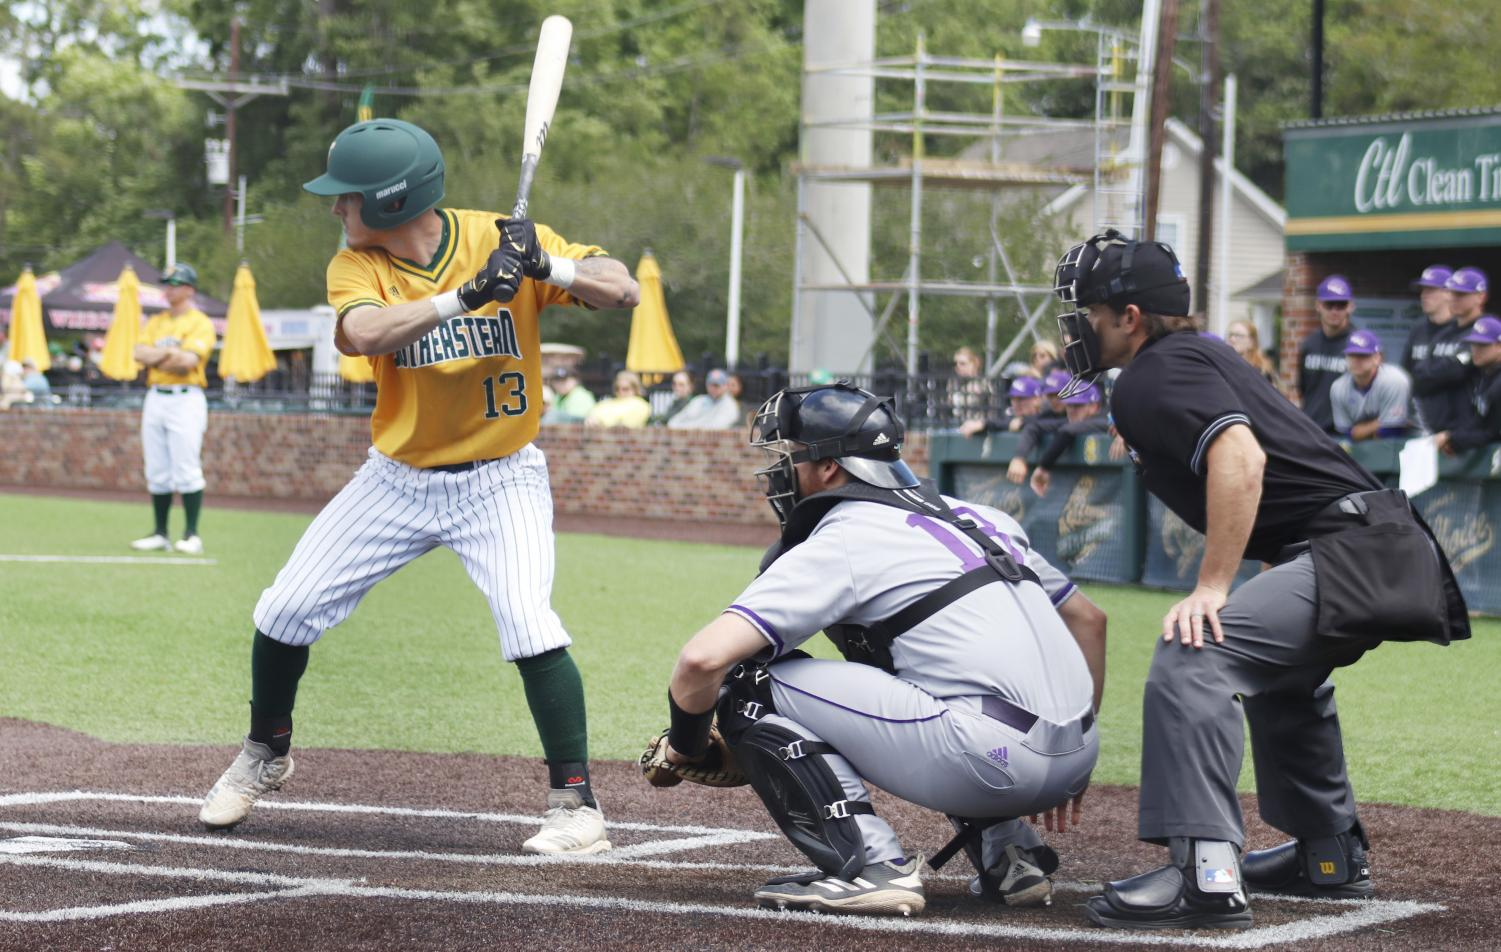 The Lions baseball team took a 2-1 series victory against the Northwestern State University Demons, putting the Lions' record at 18-18.